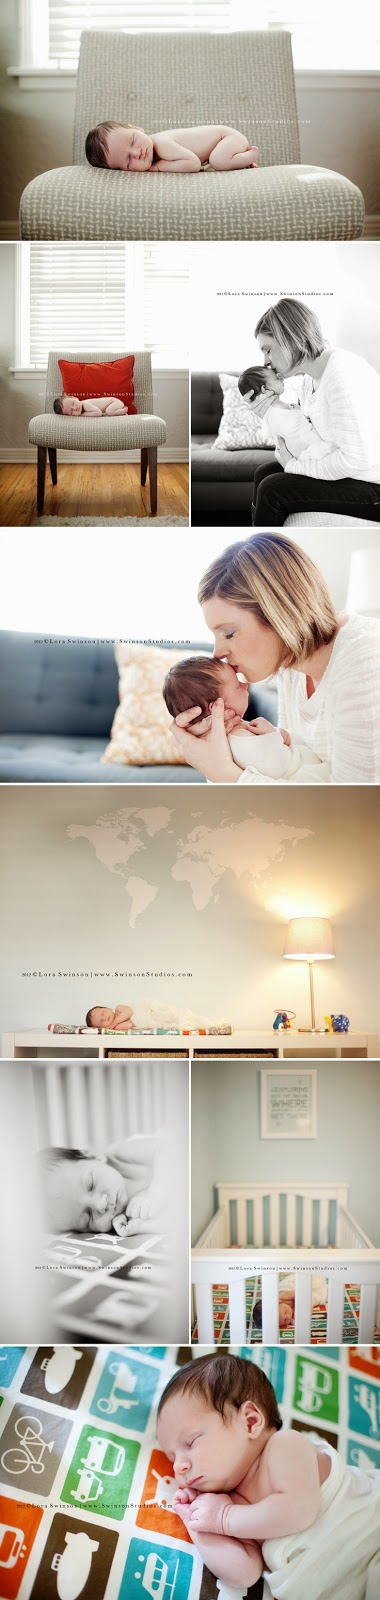 Newborn Lifestyle Photography { Featuring Lora Swinson }